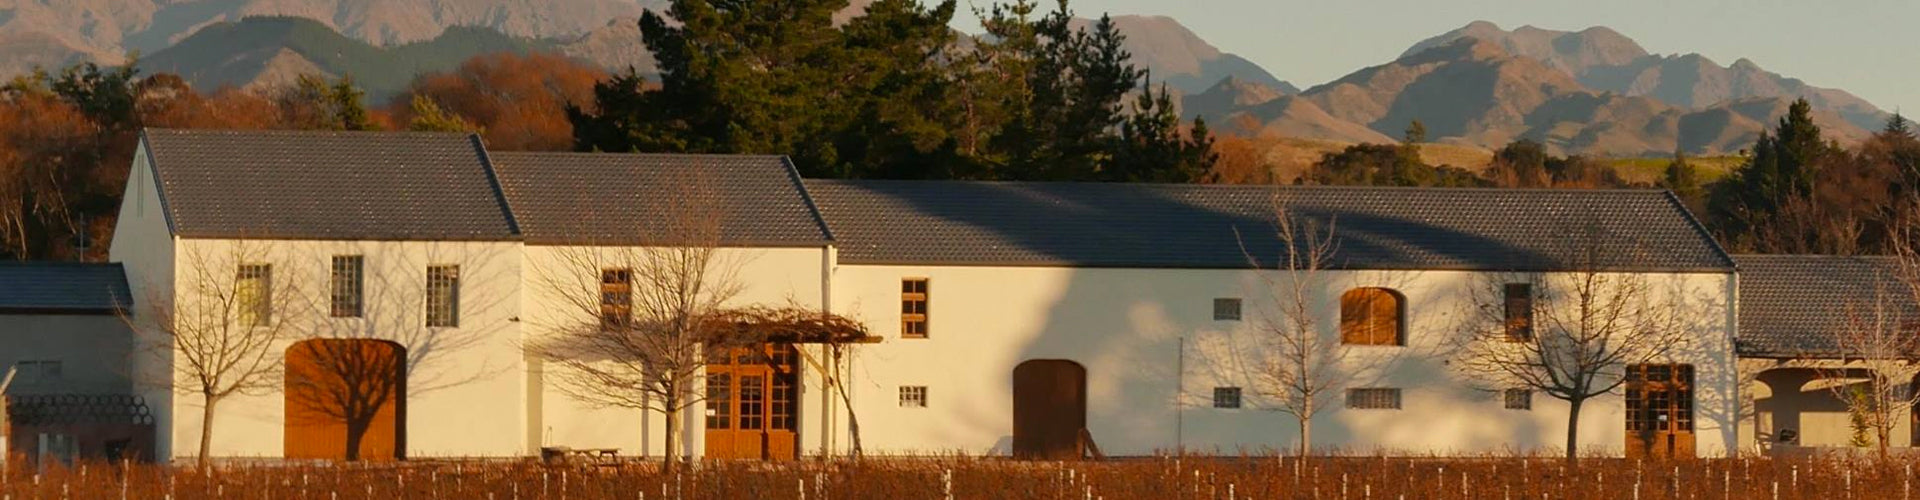 The Isabel Estate Winery Building